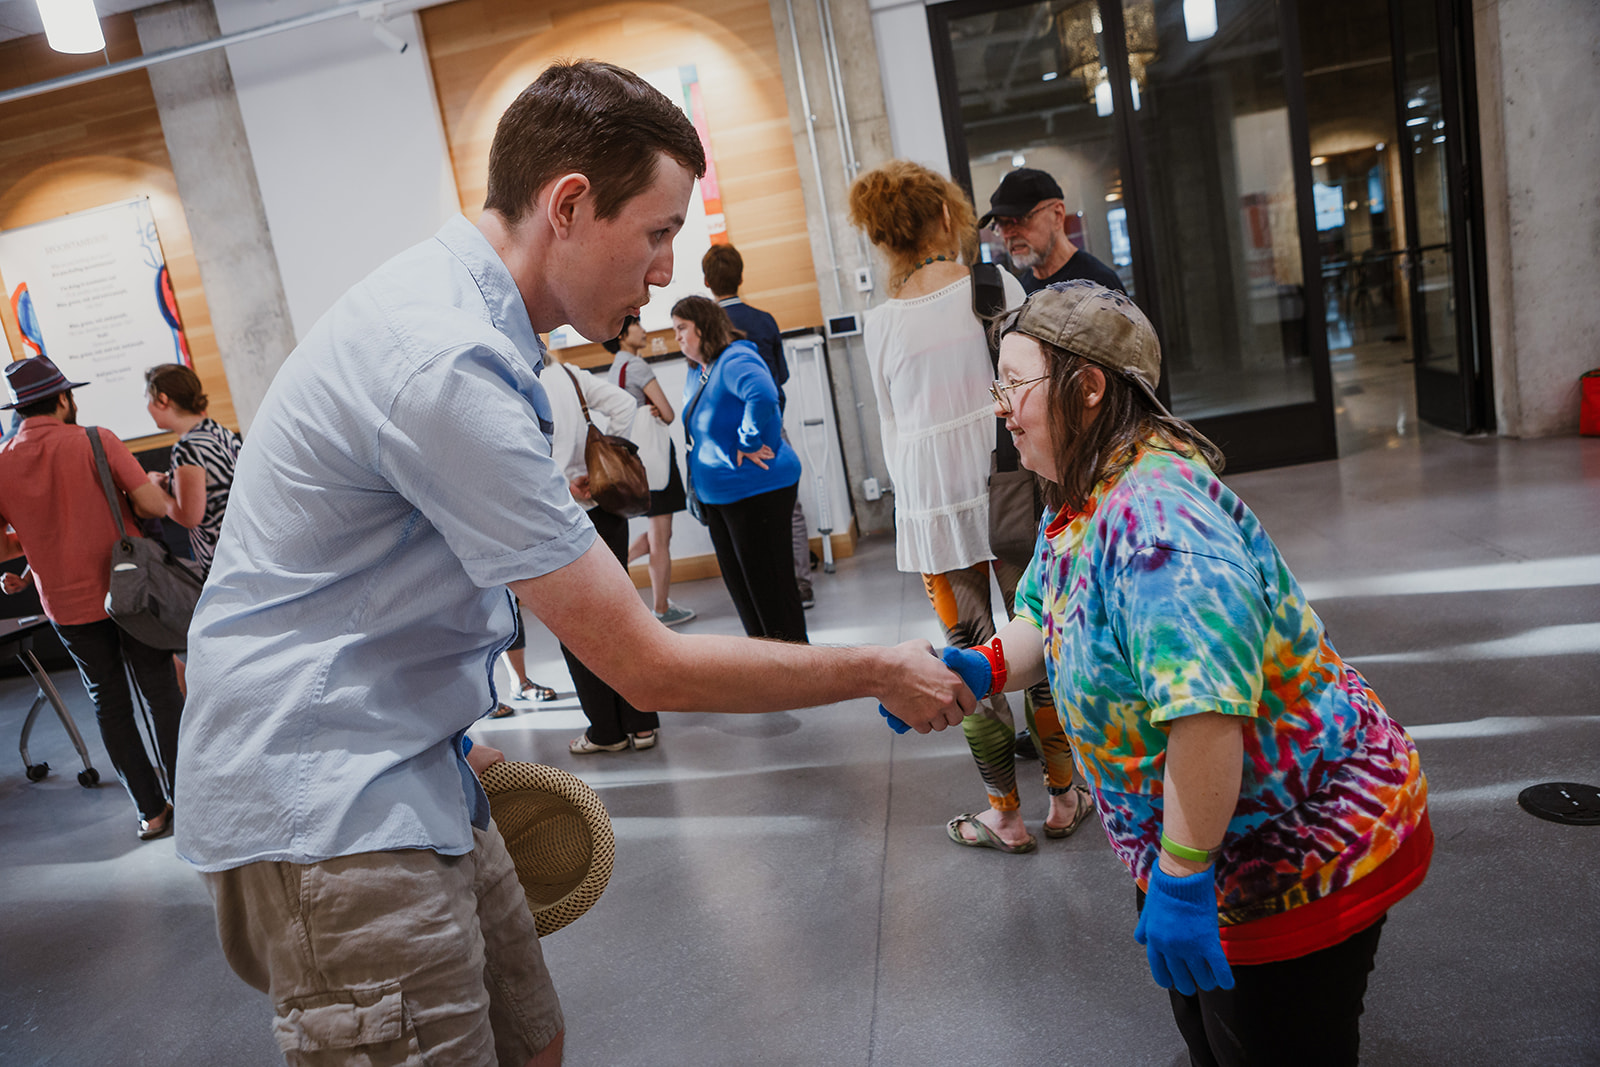 A visitor congratulates Teresa as he shakes her hand. Photo: This Is It Studios.